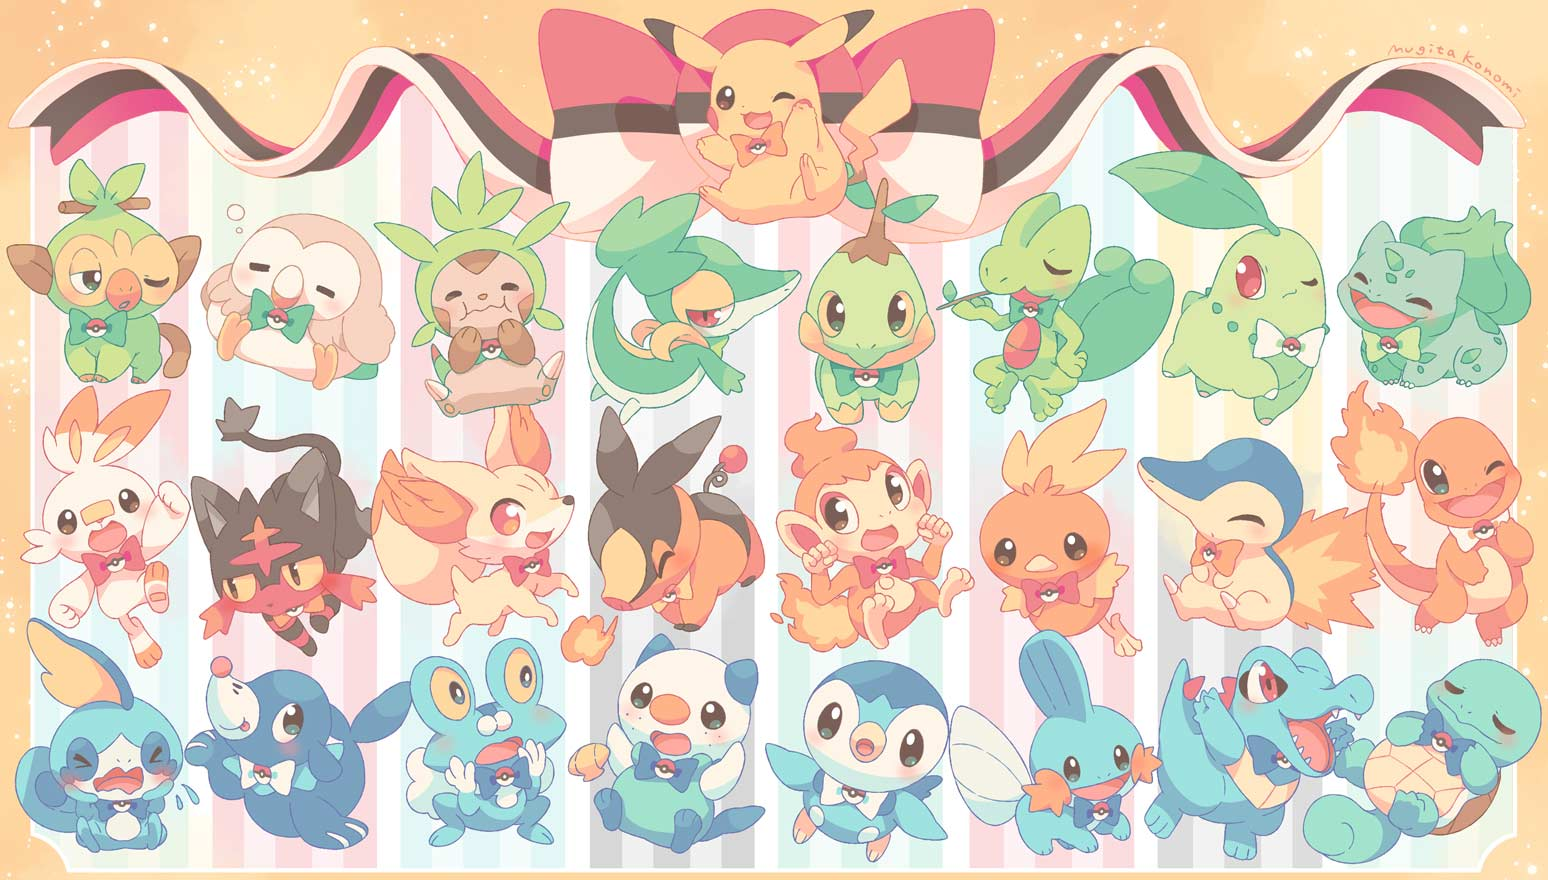 >_< :i :p ;d arm_up blush bow bowtie brown_eyes bubble bulbasaur charmander chespin chikorita chimchar clenched_hands closed_eyes closed_mouth colored_sclera commentary_request creature crying cyndaquil eating fennekin fire froakie gen_1_pokemon gen_2_pokemon gen_3_pokemon gen_4_pokemon gen_5_pokemon gen_6_pokemon gen_7_pokemon gen_8_pokemon green_eyes green_neckwear grookey hands_up happy jippe litten looking_at_viewer looking_to_the_side mouth_hold mudkip no_humans one_eye_closed open_mouth oshawott pikachu piplup pokemon pokemon_(creature) popplio red_eyes rowlet scorbunny seashell shell sitting sleepy smile snivy sobble squirtle starter_pokemon stick tepig toes tongue tongue_out torchic totodile treecko turtwig wavy_mouth white_neckwear yellow_sclera |d